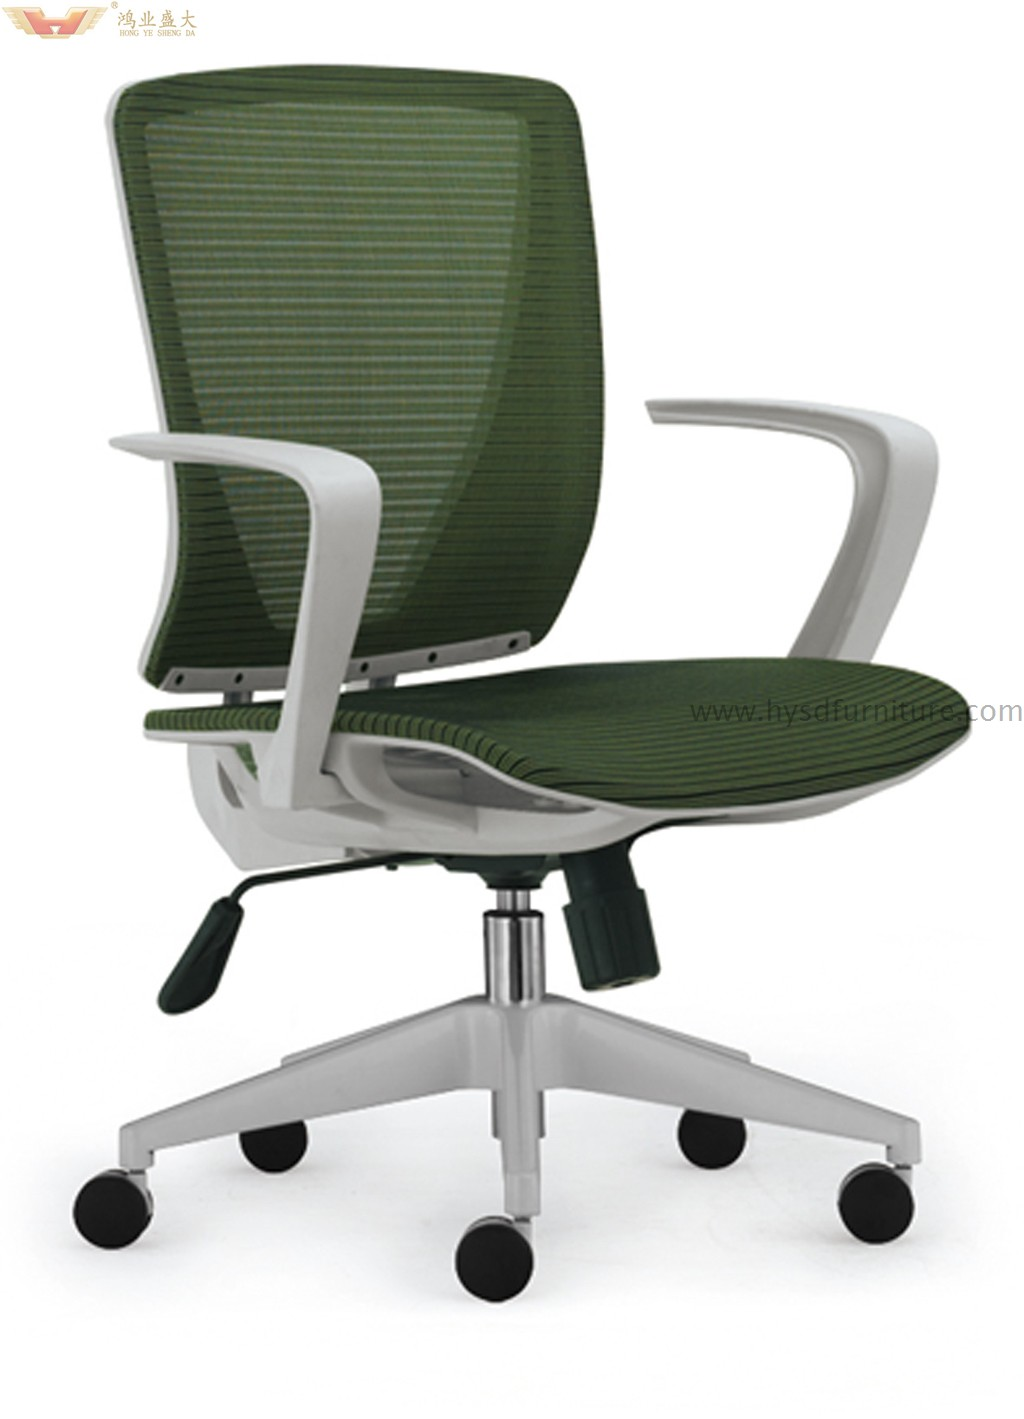 executive revolving chair specifications bath chairs for adults walmart modern fabric draft office meeting swivel visitor hy mesh with armrest